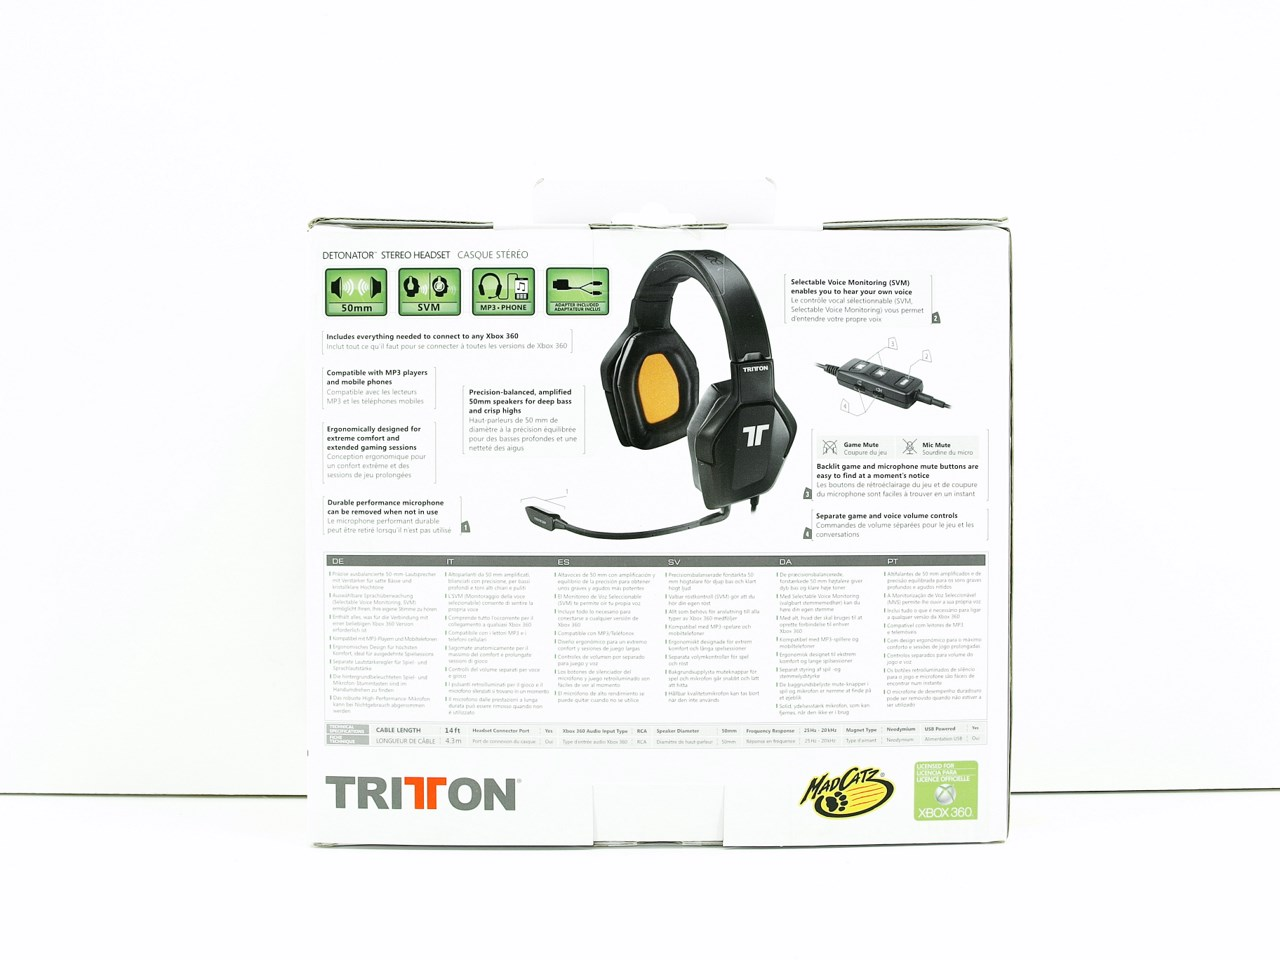 Tritton Xbox 360 Detonator Stereo Headset Review